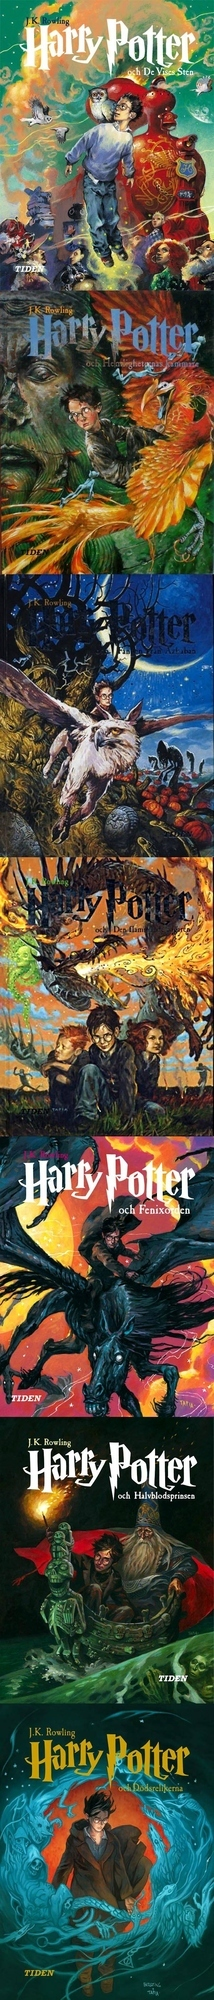 Swedish Harry Potter Book Covers